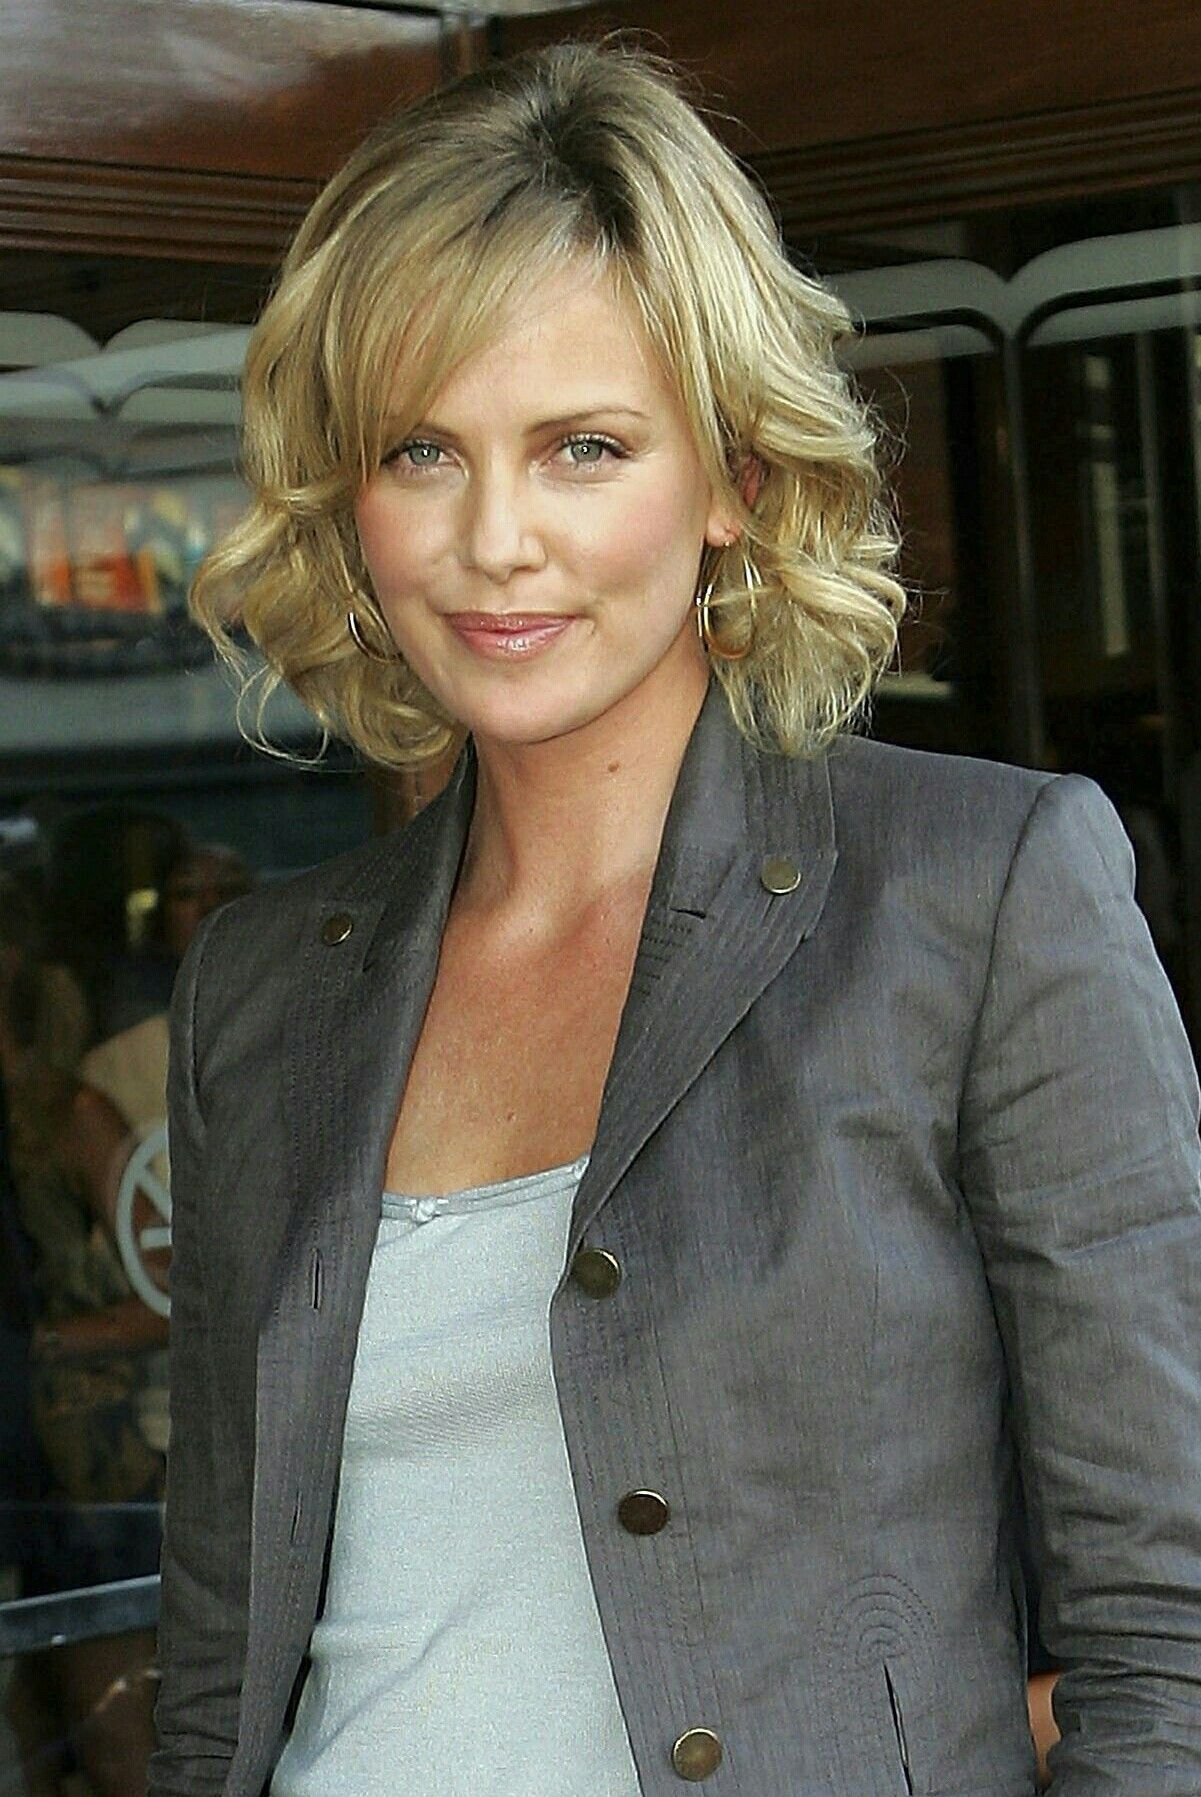 Heroine haircut images charlize theron  charlize theron  pinterest  charlize theron and